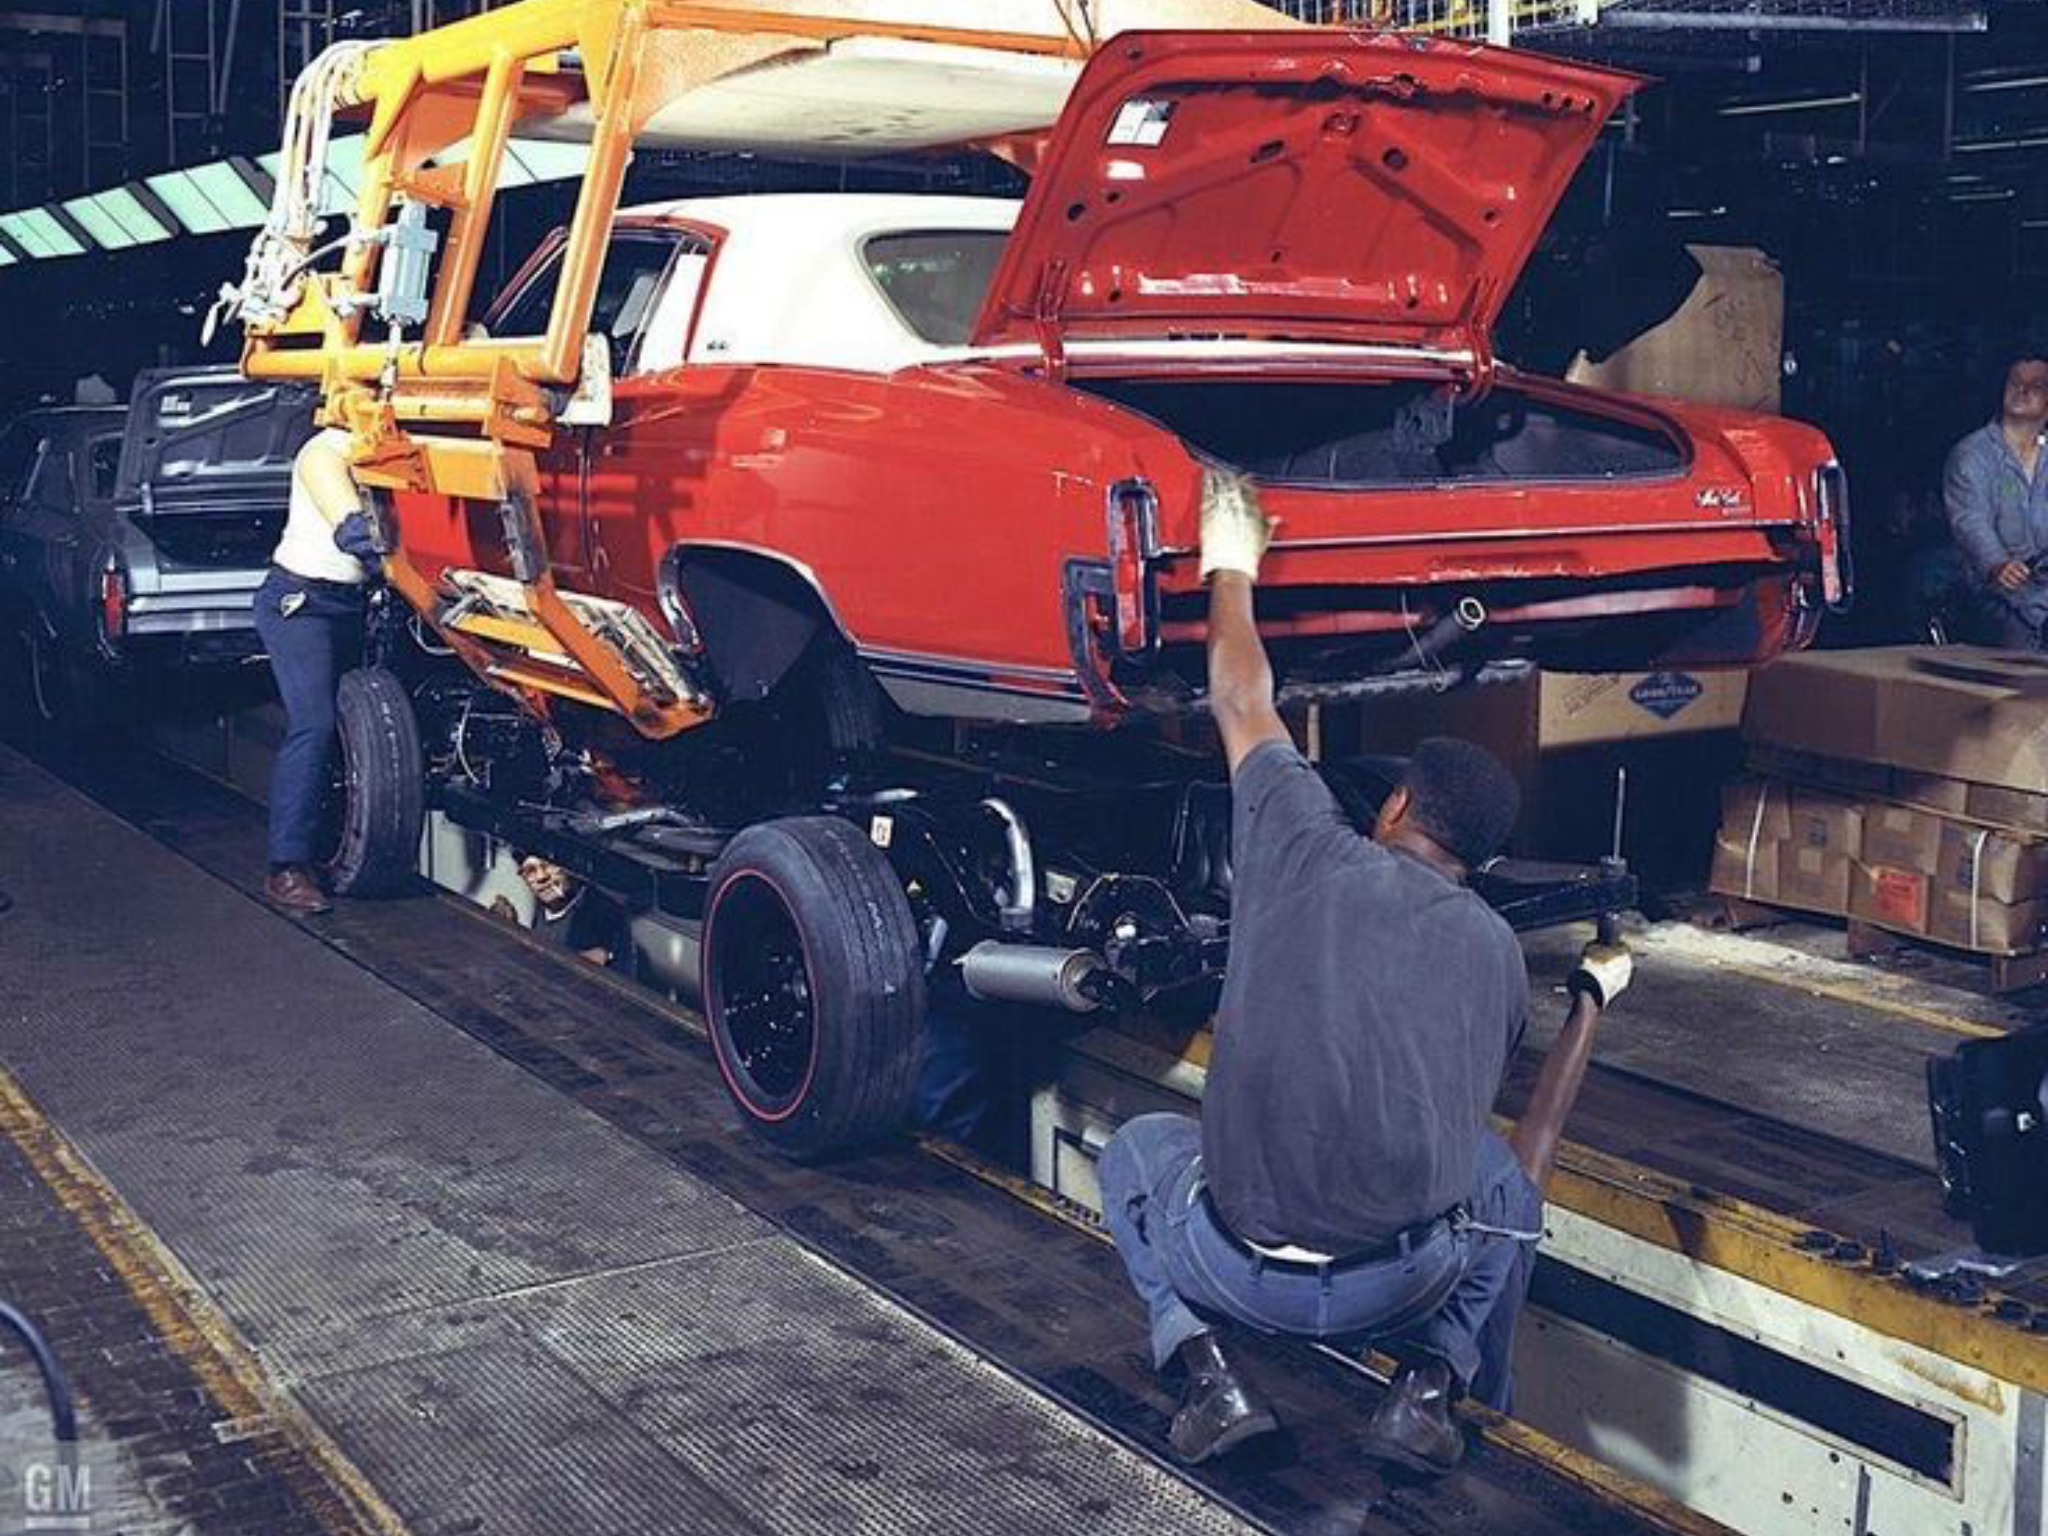 1970 Chevrolet Monte Carlo Assembly Line | Vintage muscle cars, Chevrolet  monte carlo, Chevy muscle cars